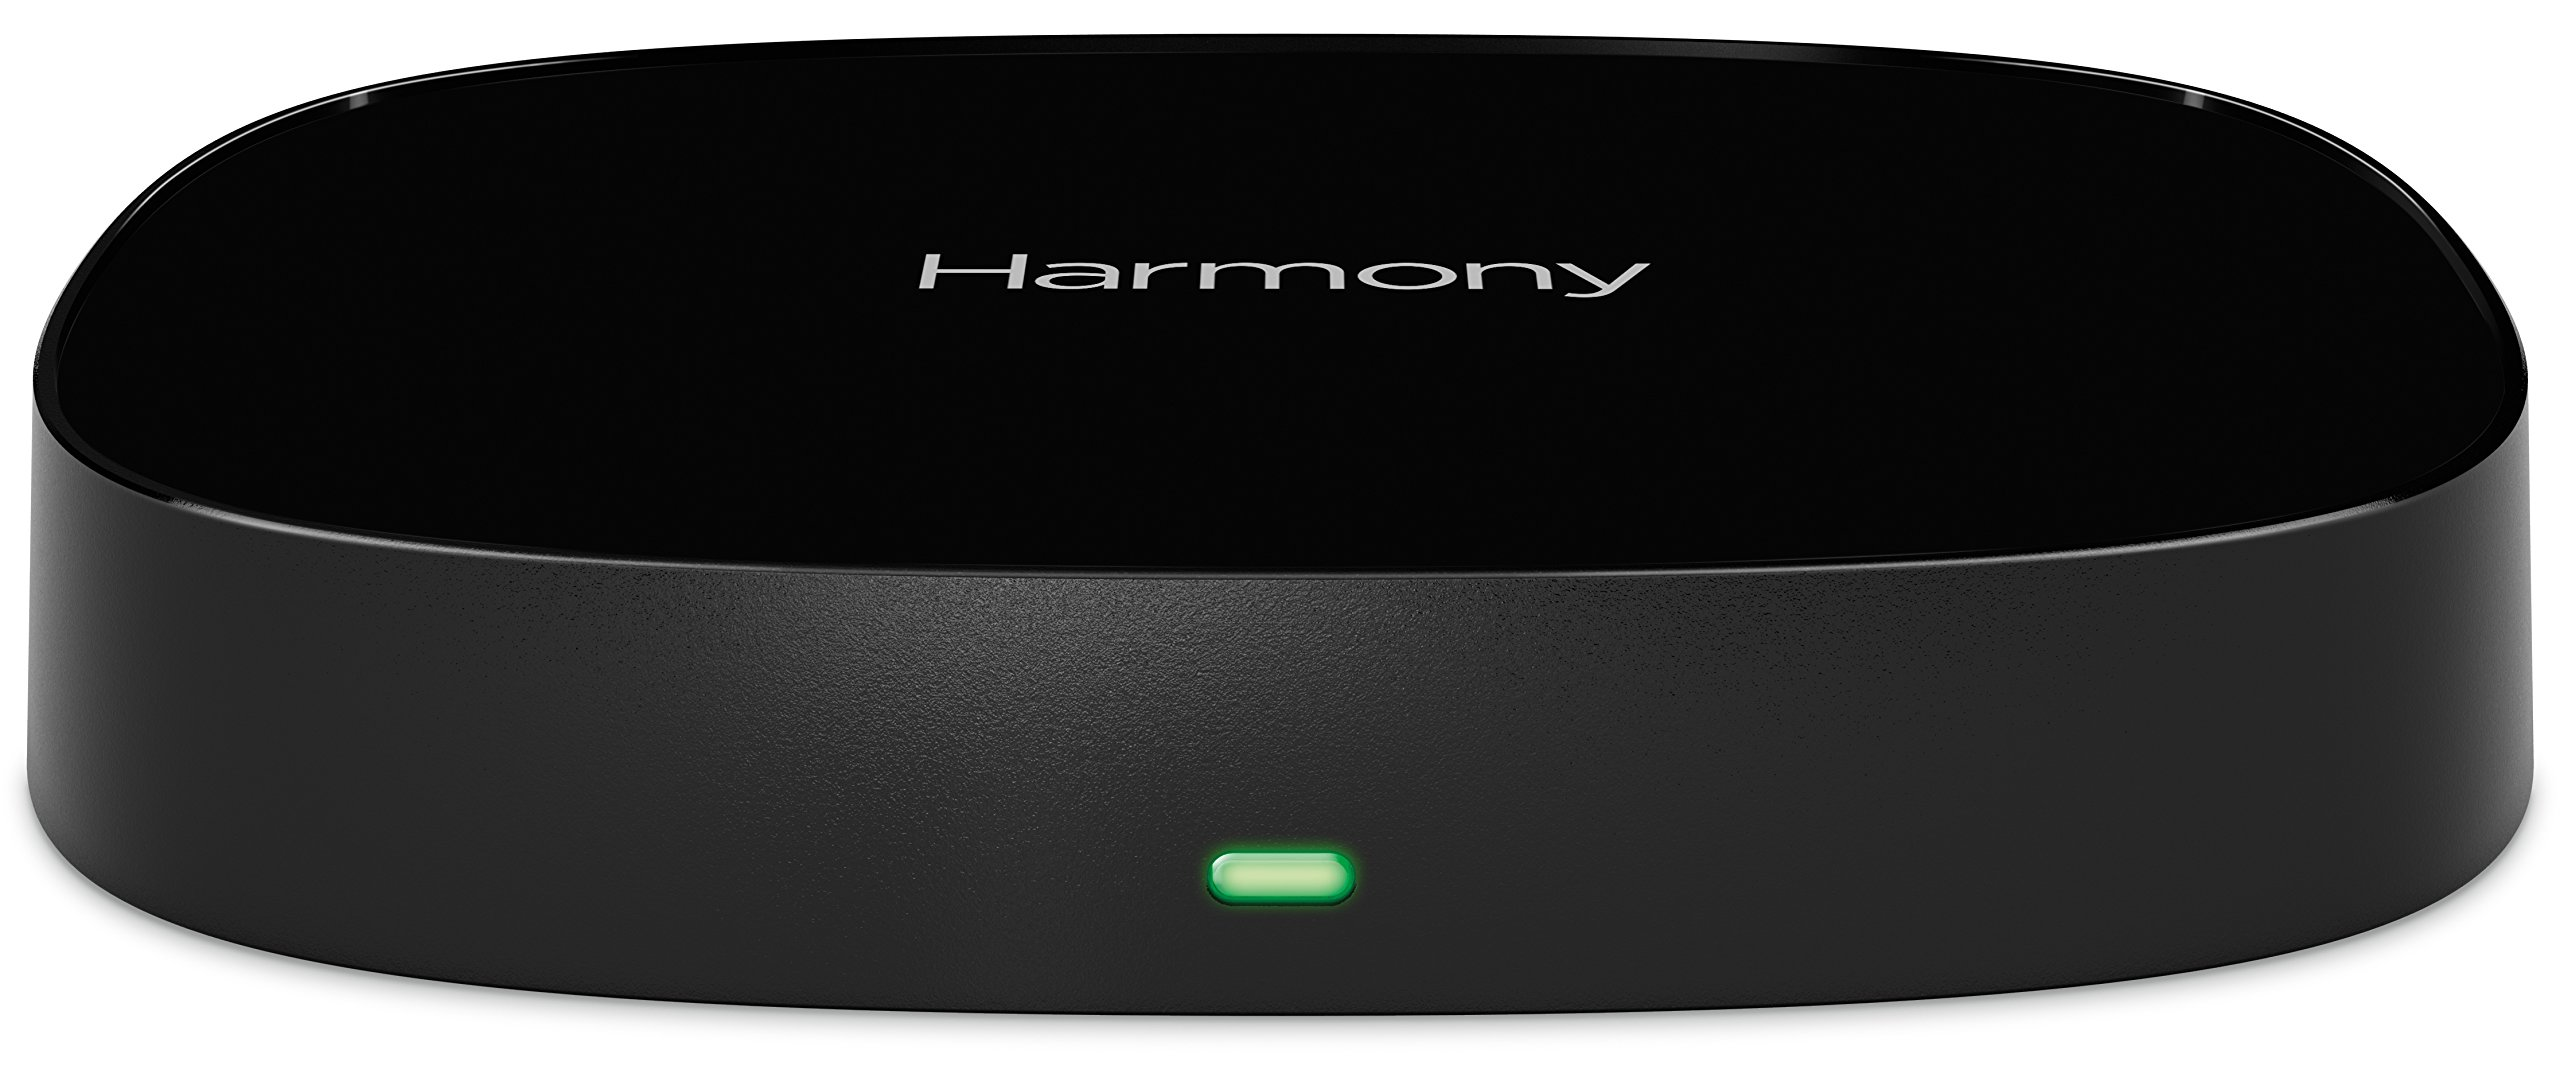 Logitech Harmony Home Hub Extender For Control Of Zigbee